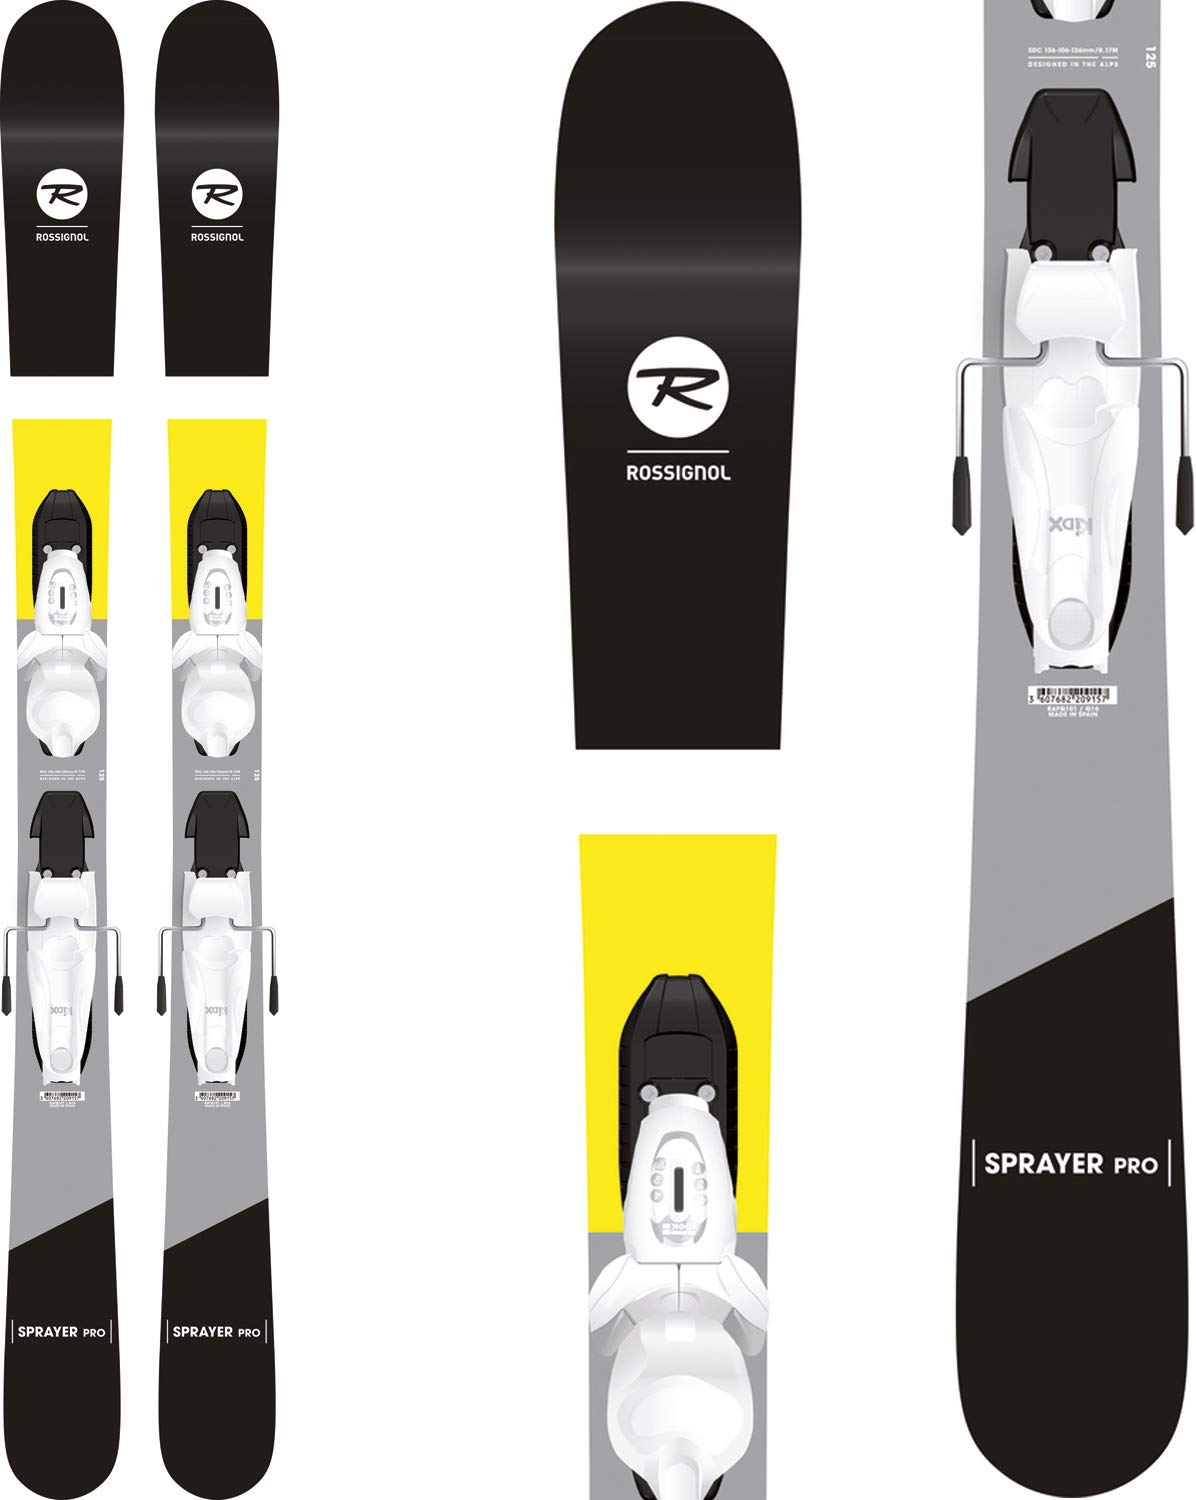 Rossignol Sprayer Pro Skis Kid - Cheap Rossignol Skis